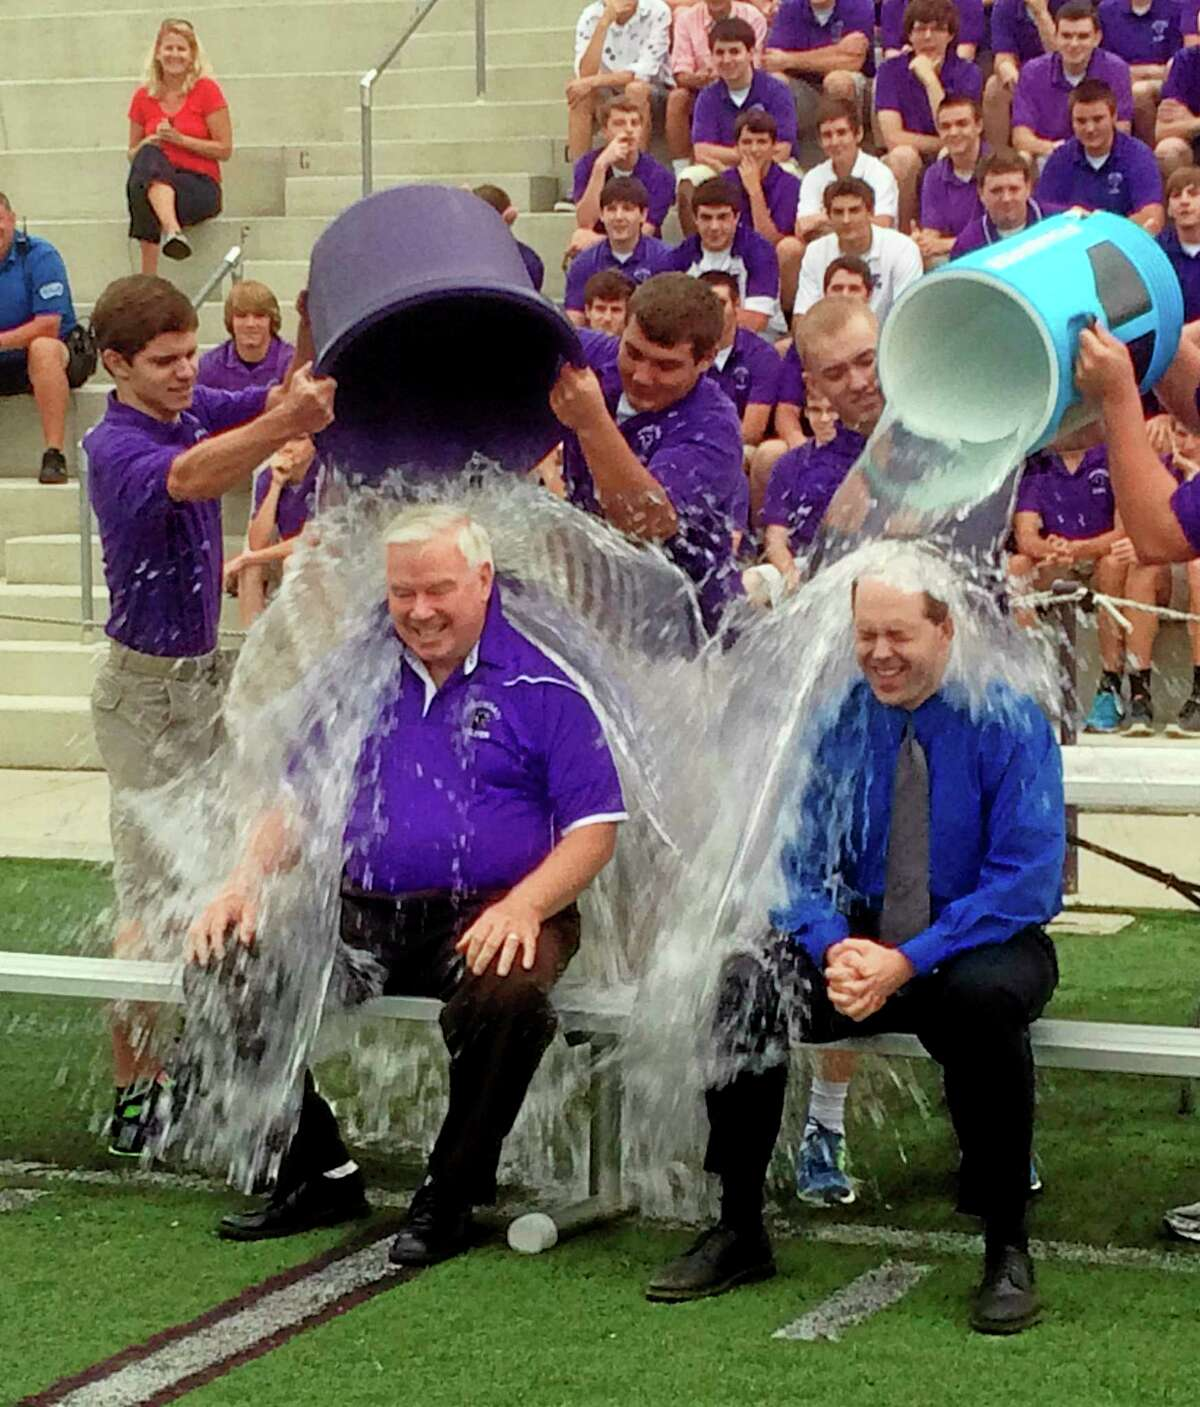 In this Thursday, Aug. 21, 2014, photo provided by the Archdiocese of Cincinnati, Jim Rigg, right, superintendent of the diocese's 113 schools, and Elder High School Principal Tom Otten take the ice-bucket challenge at Elder High School in Cincinnati. The archdiocese is discouraging its students and staff from donating any money raised as part of the challenge to the ALS Association, saying the group funds a study involving embryonic stem cell research